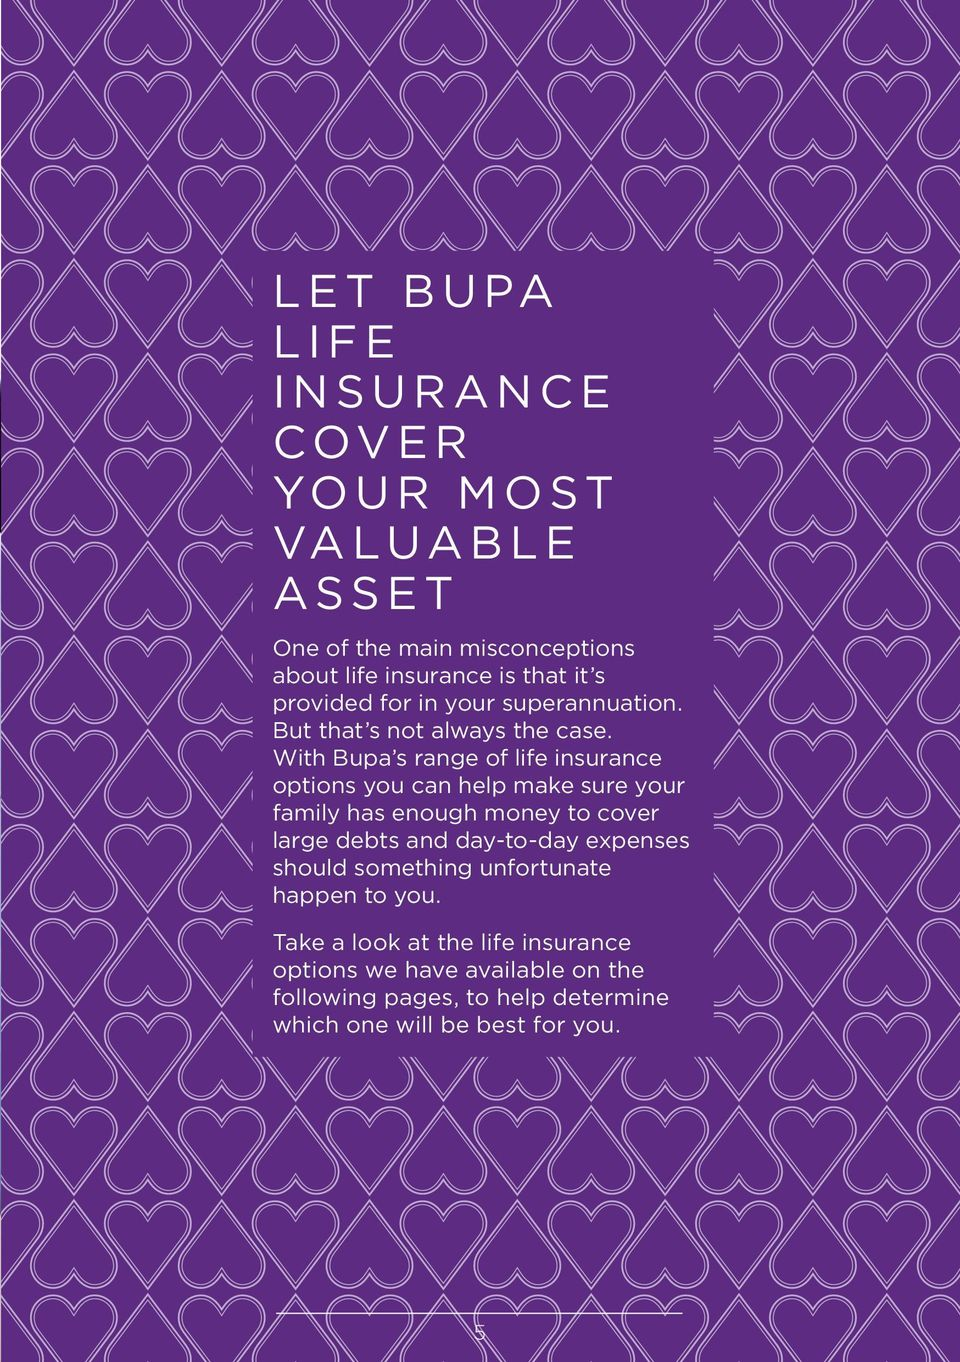 With Bupa s range of life insurance options you can help make sure your family has enough money to cover large debts and